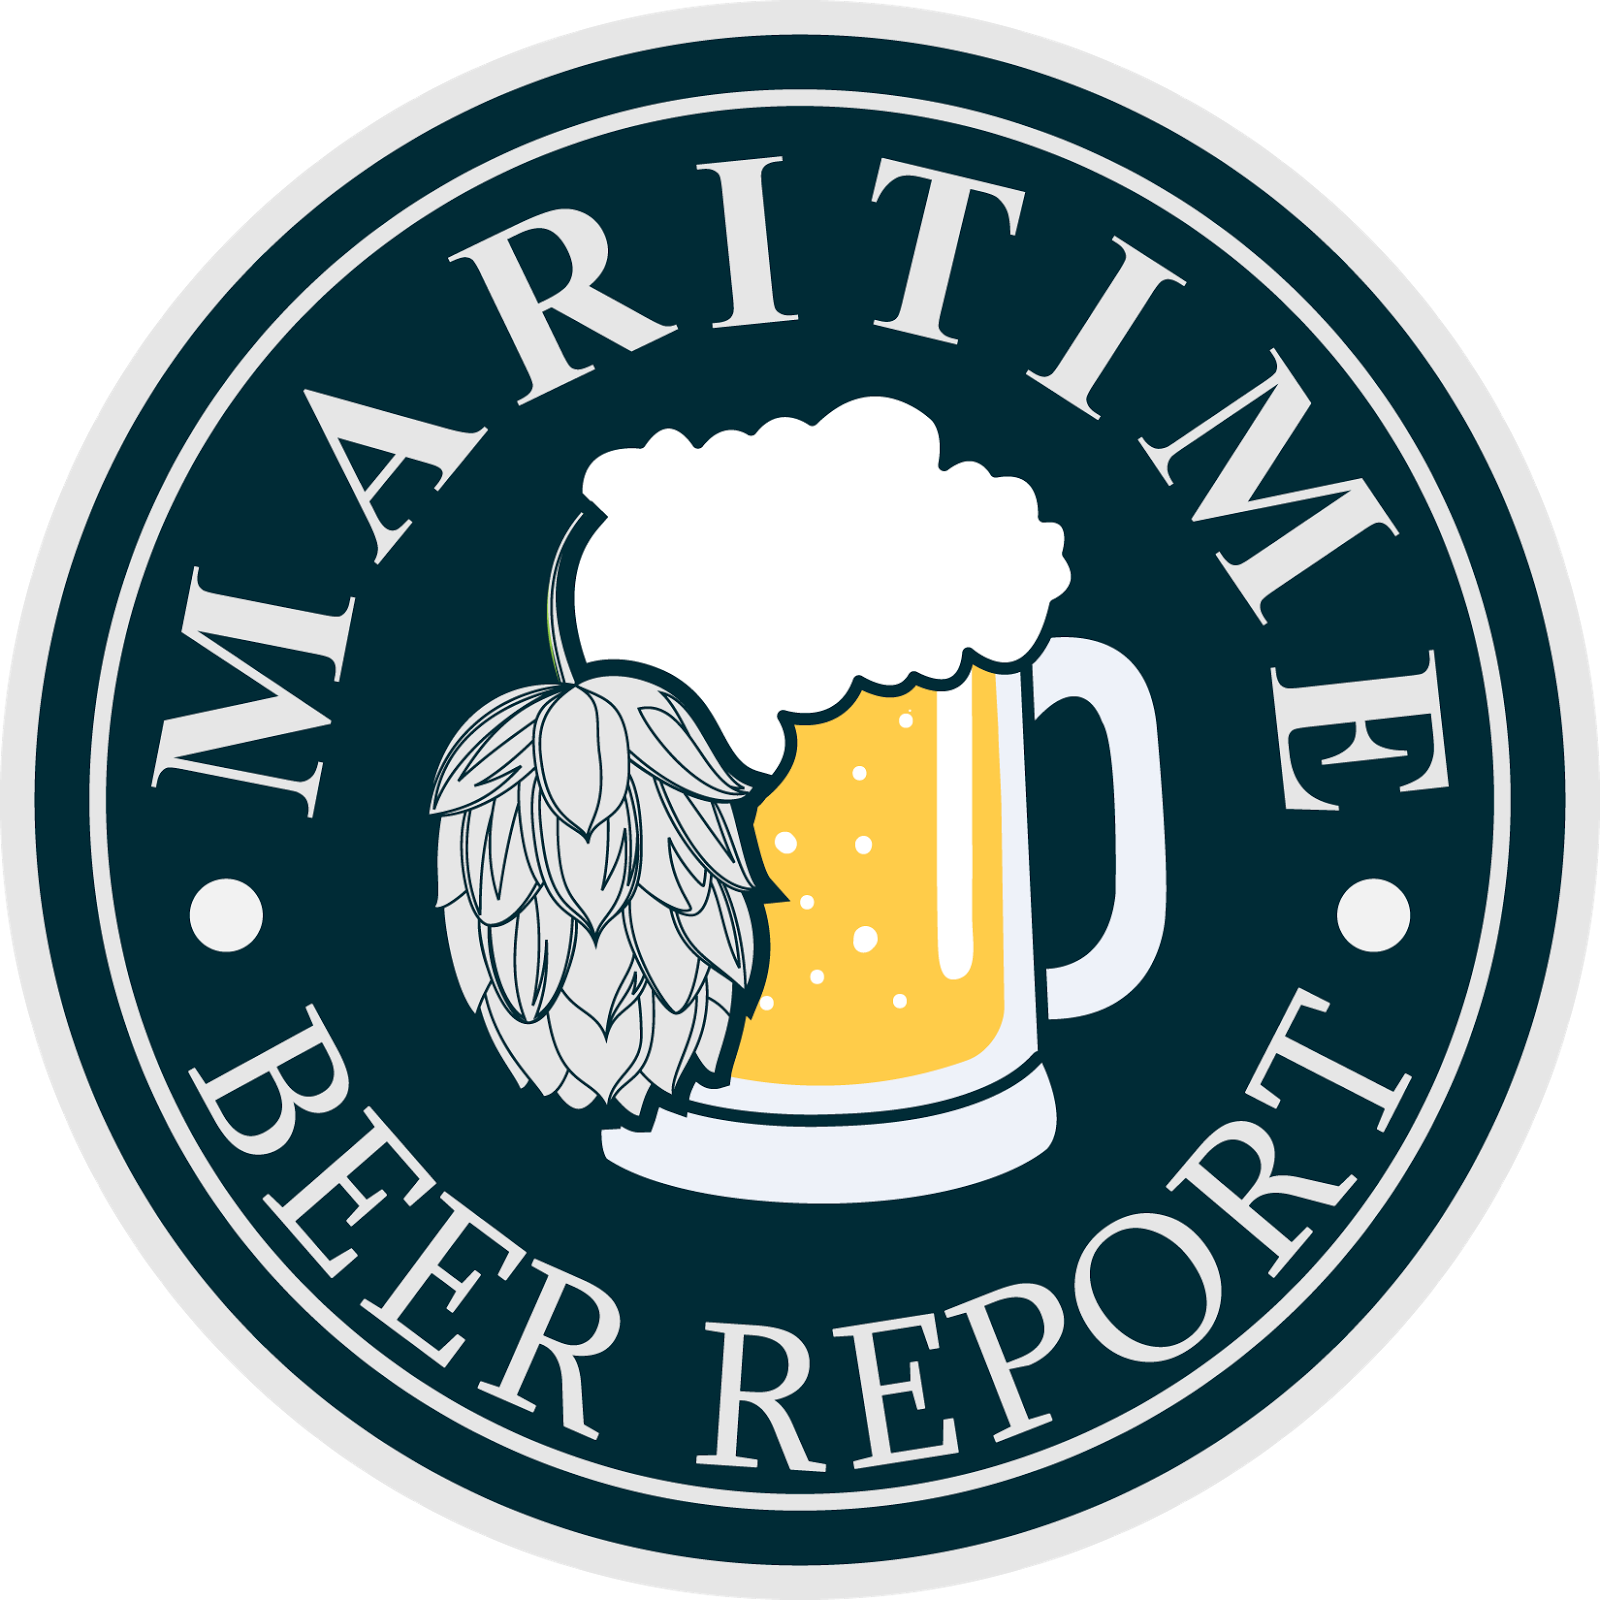 Maritime Beer Report: Maritime Beer Report - April 8, 2016